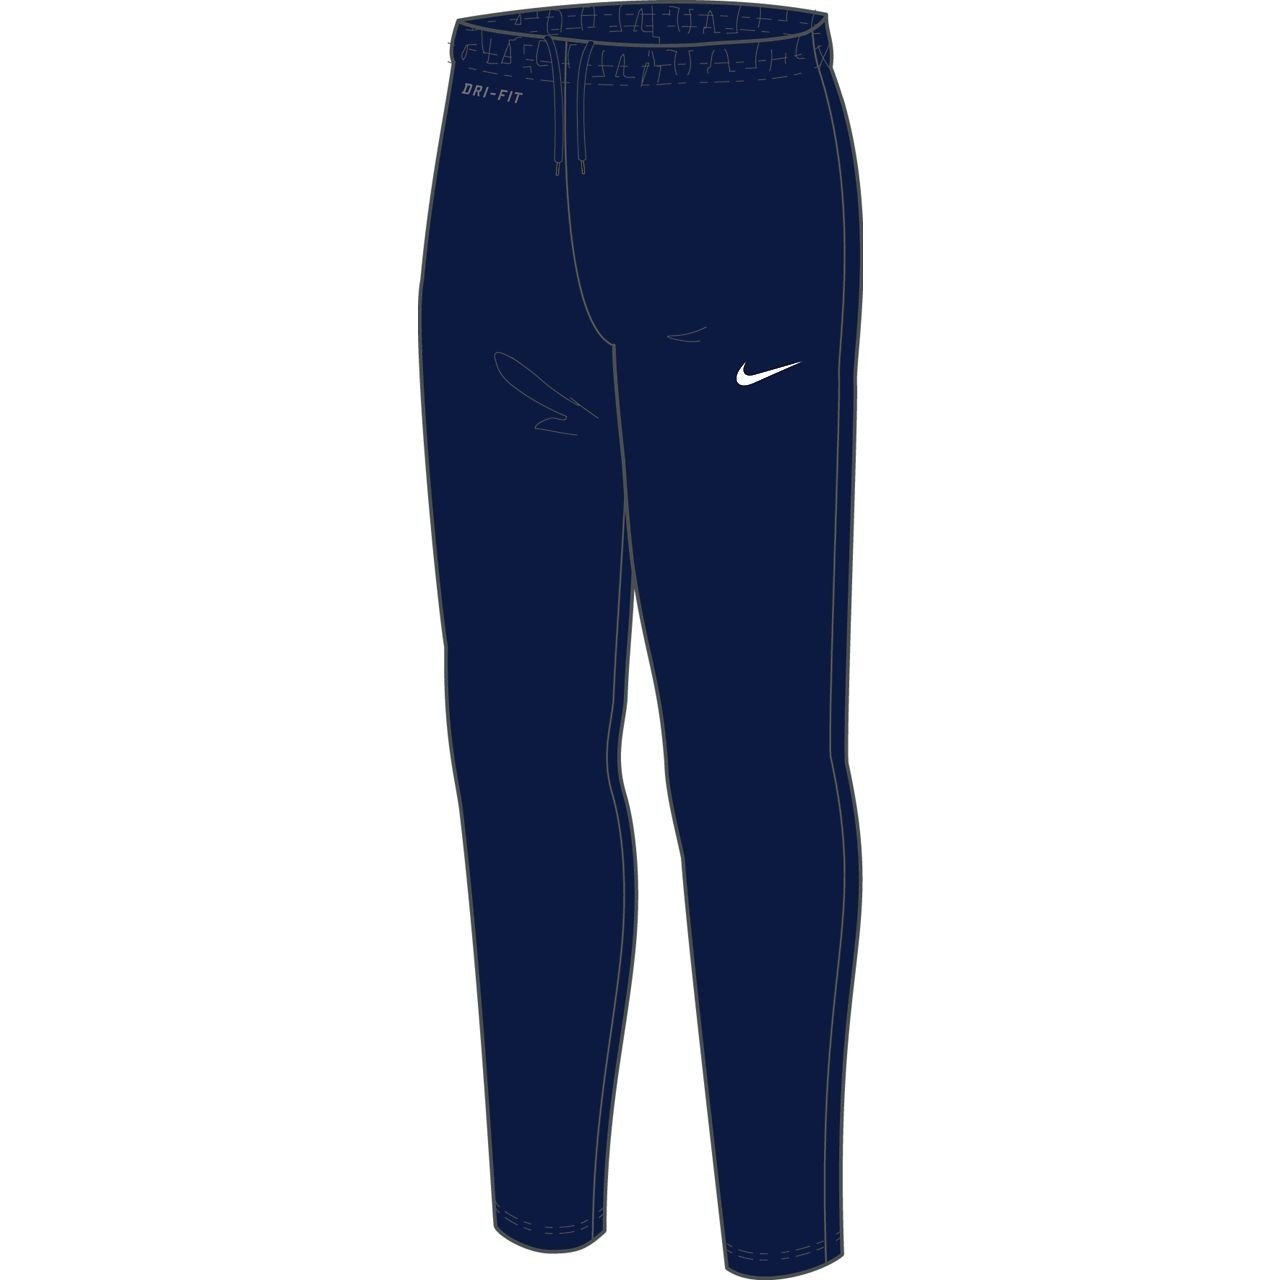 NIKE Youth Libero Tech Knit Pant 588393-419 (Medium, Navy Blue)